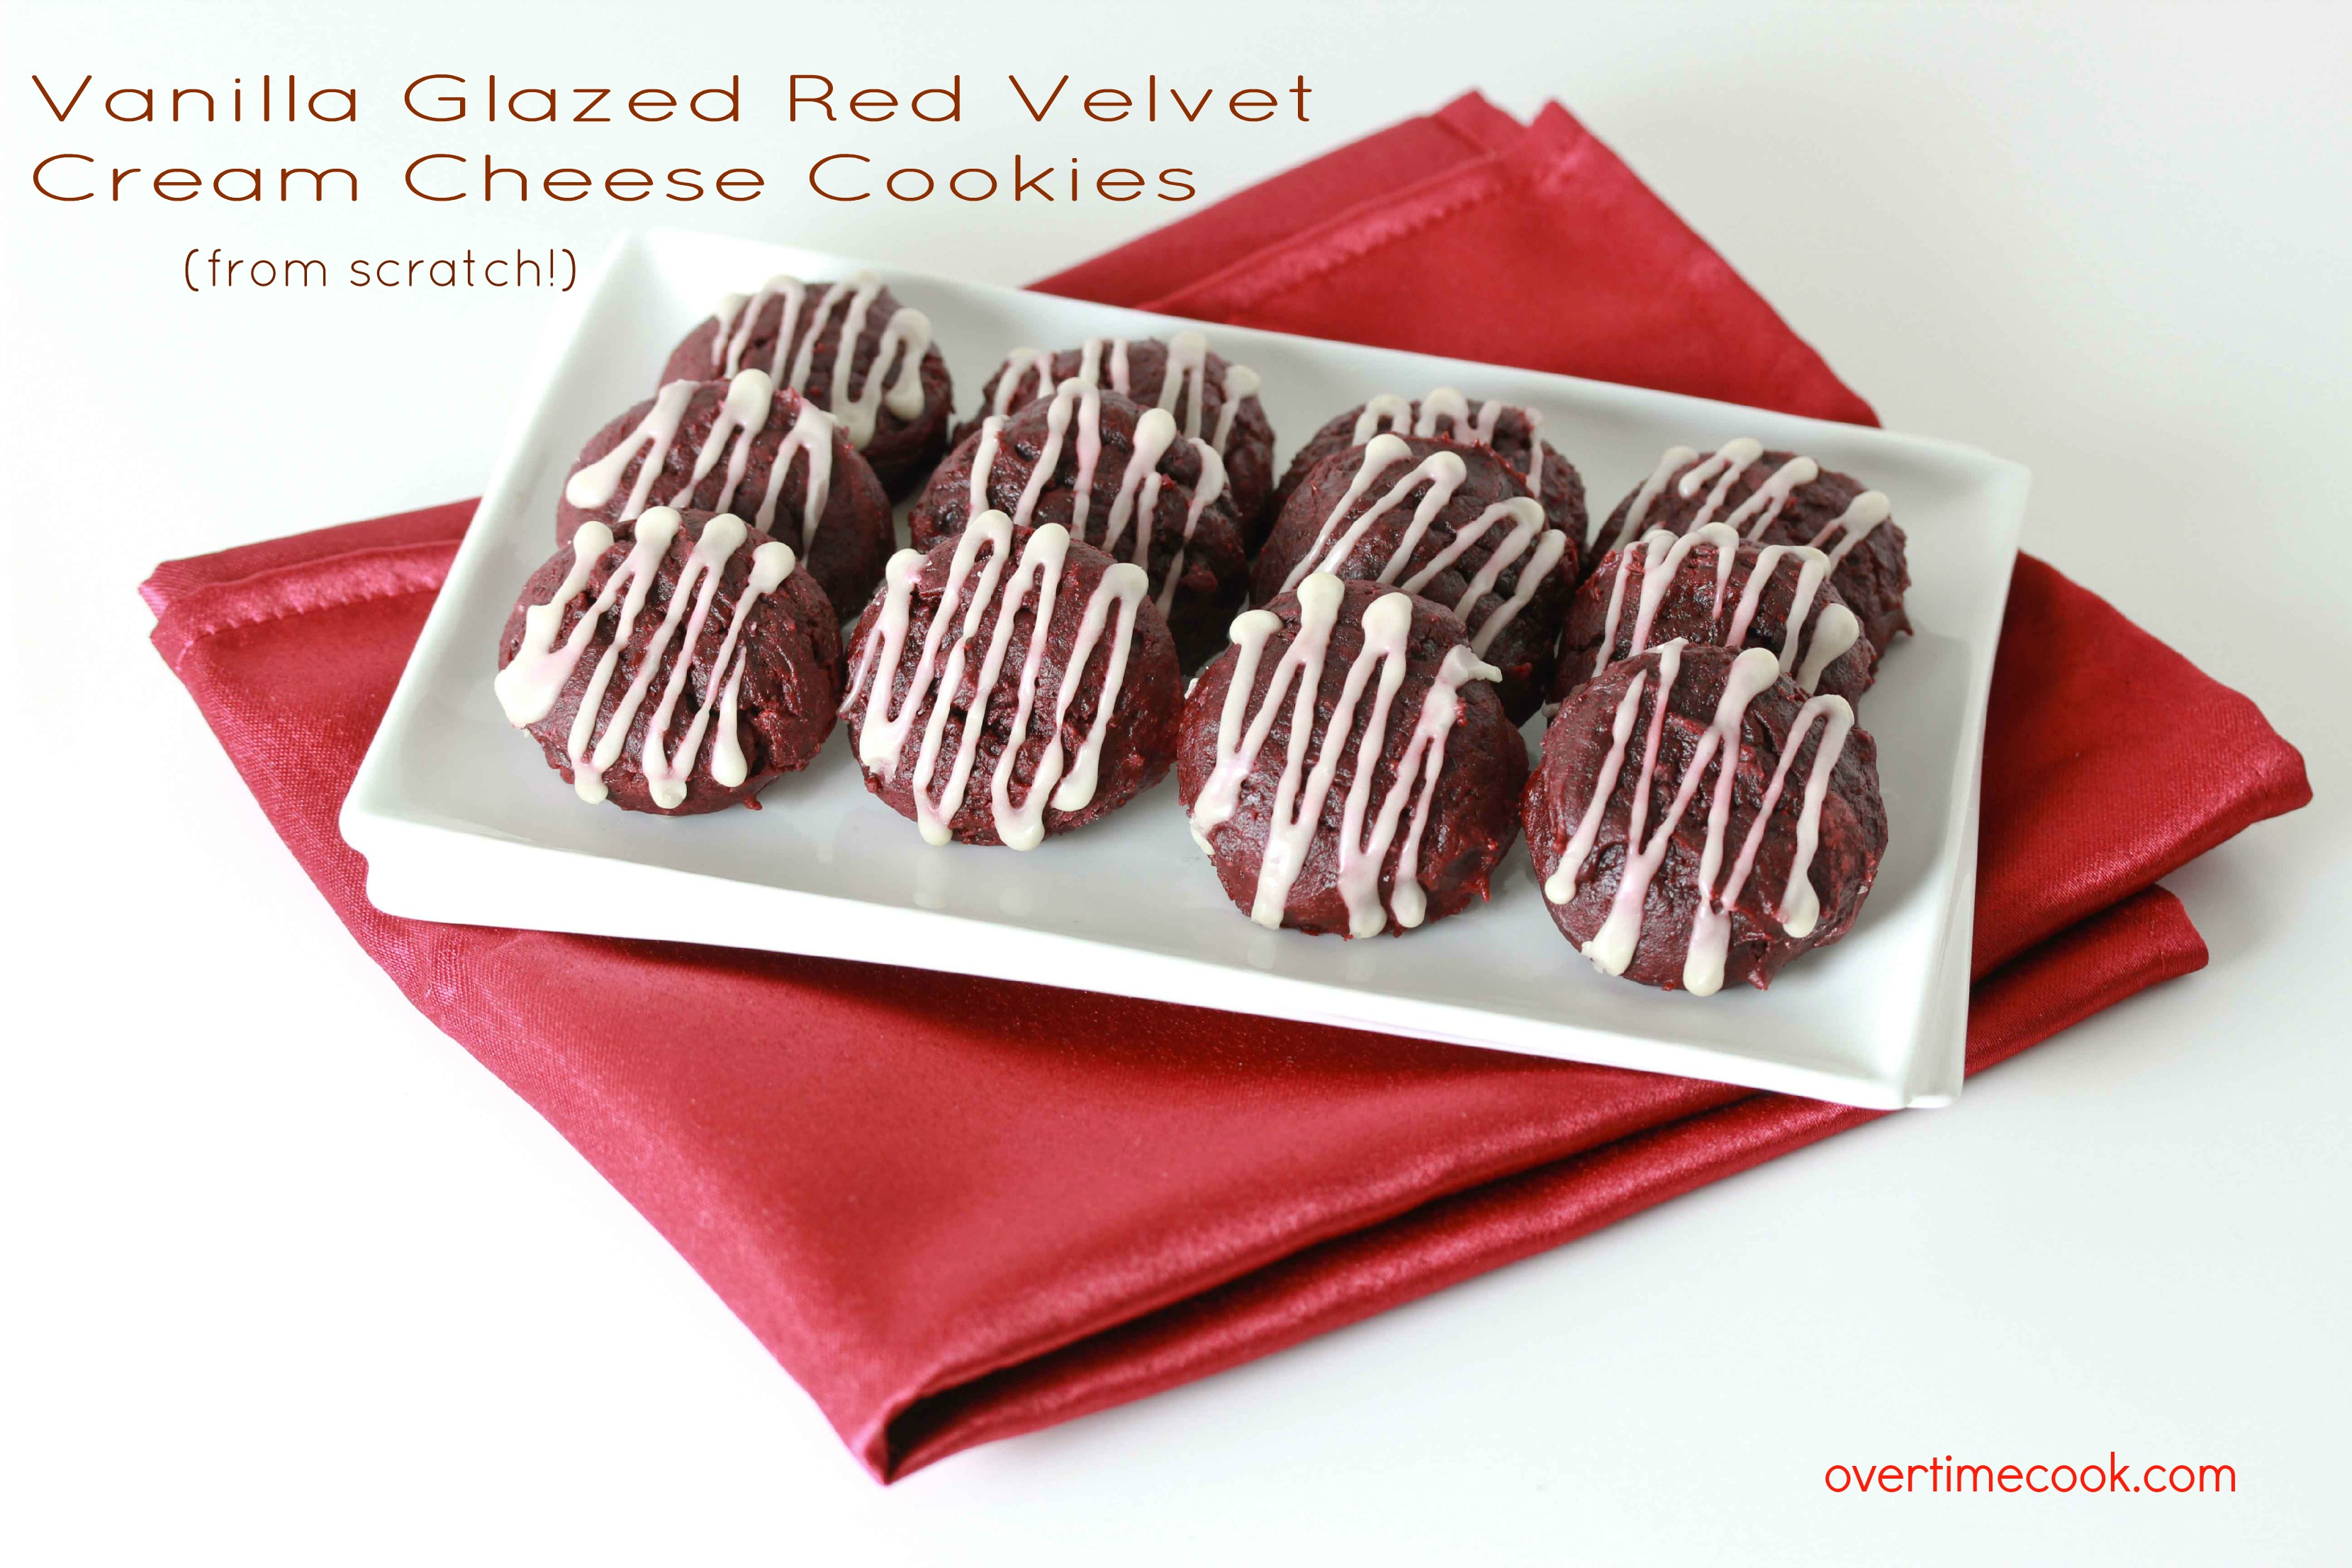 vanilla glazed red velvet cream cheese cookies on overtimecook